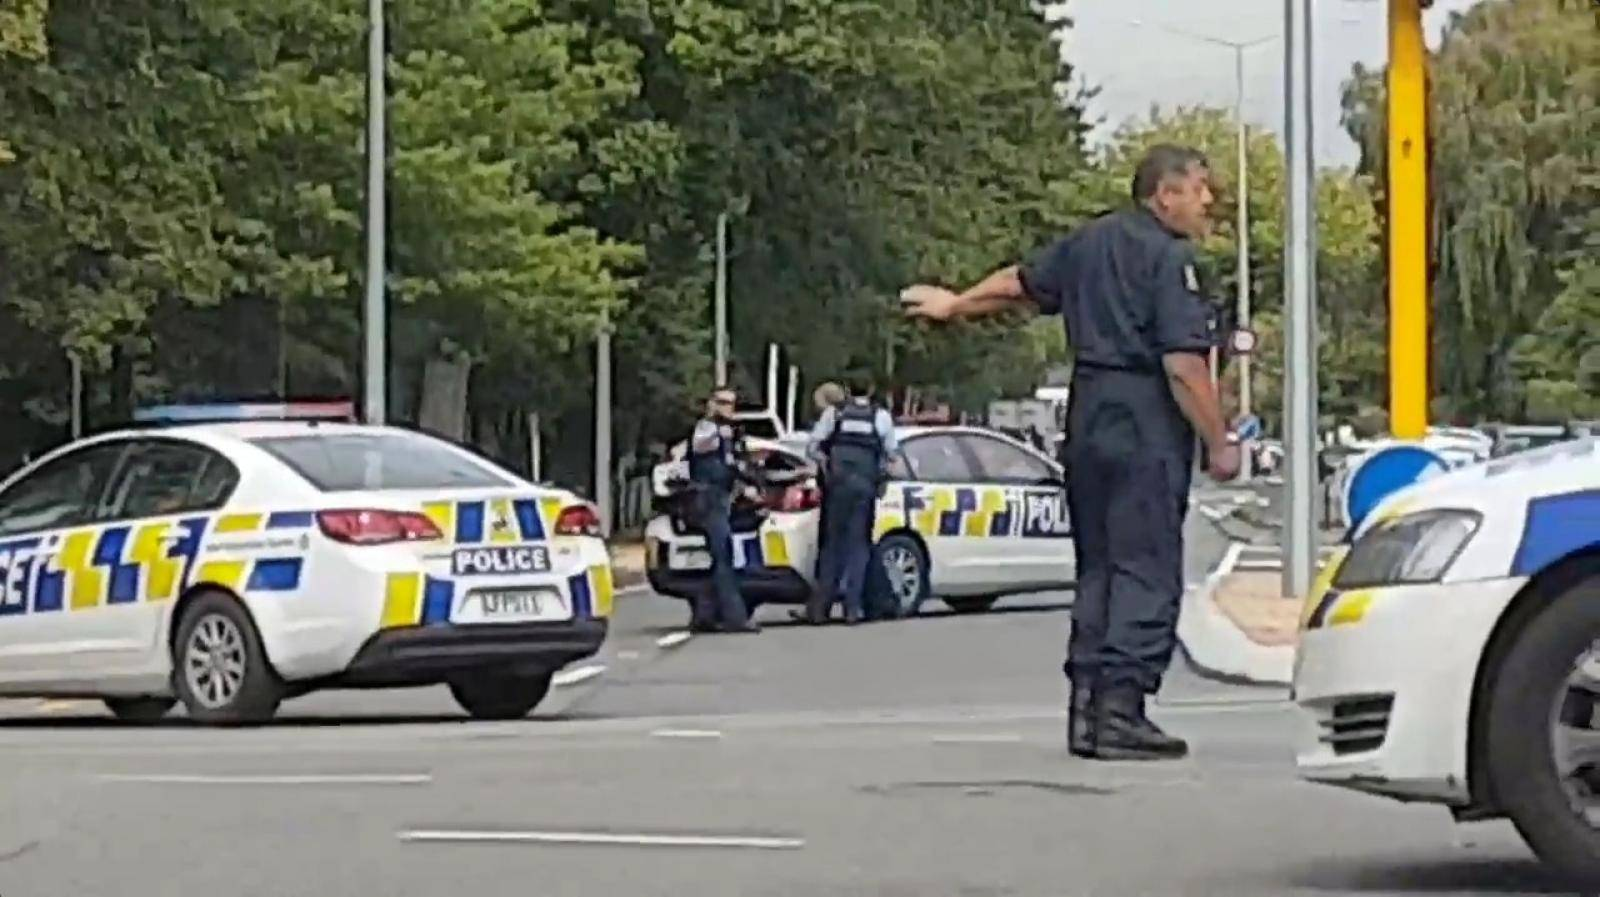 Social media video grab of police directing traffic at a road junction following reports of shootings at two mosques in Christchurch